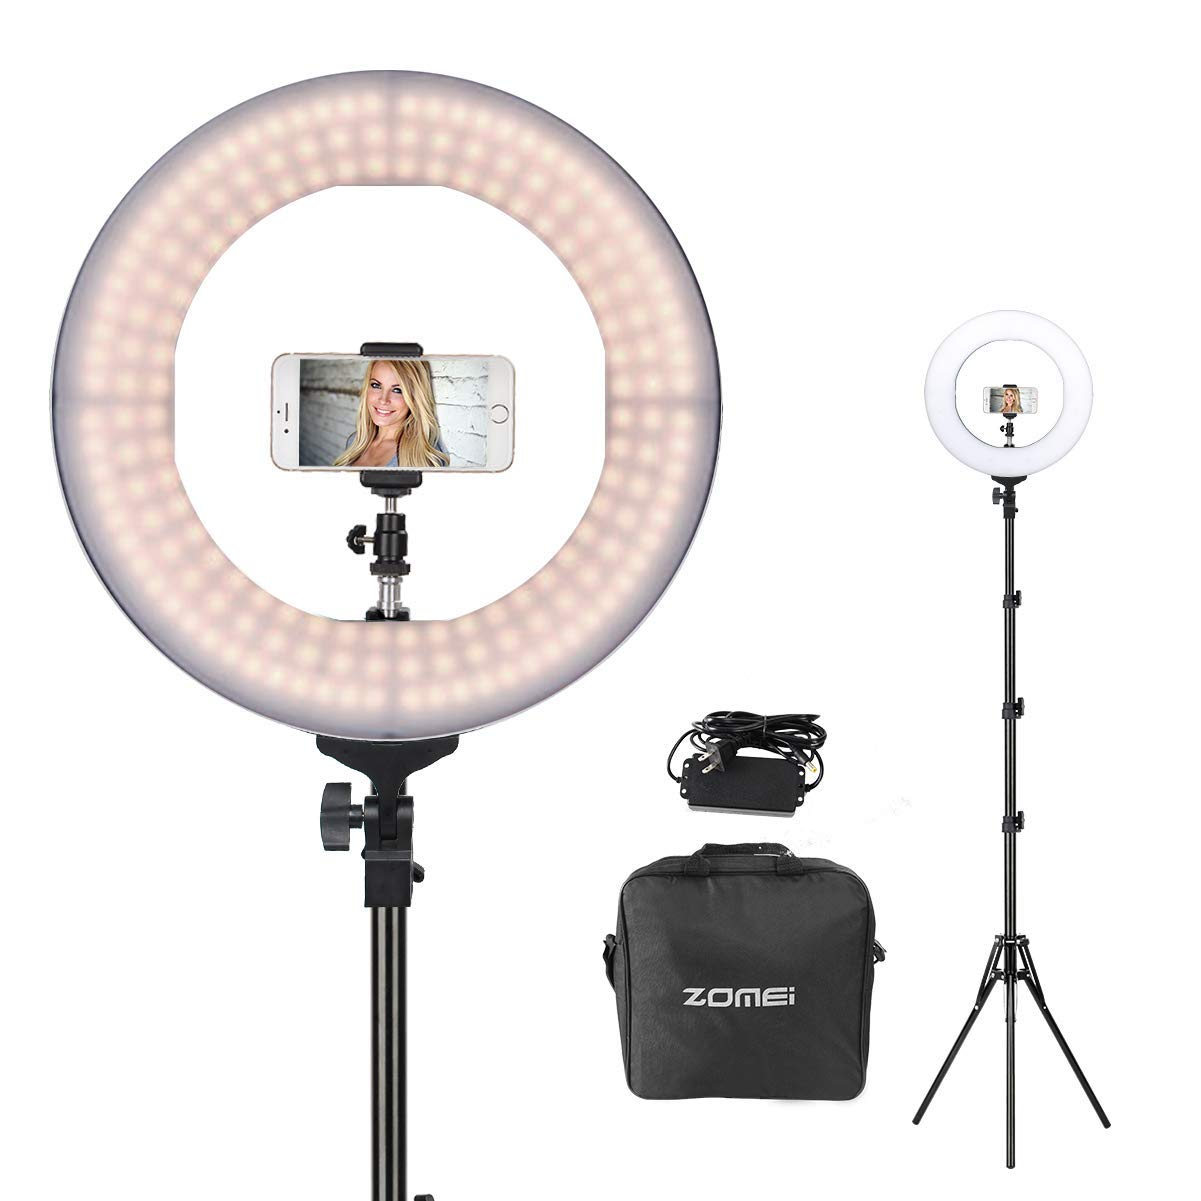 """ZOMEi 14"""" Dimmable Ring Light Makeup Lighting"""